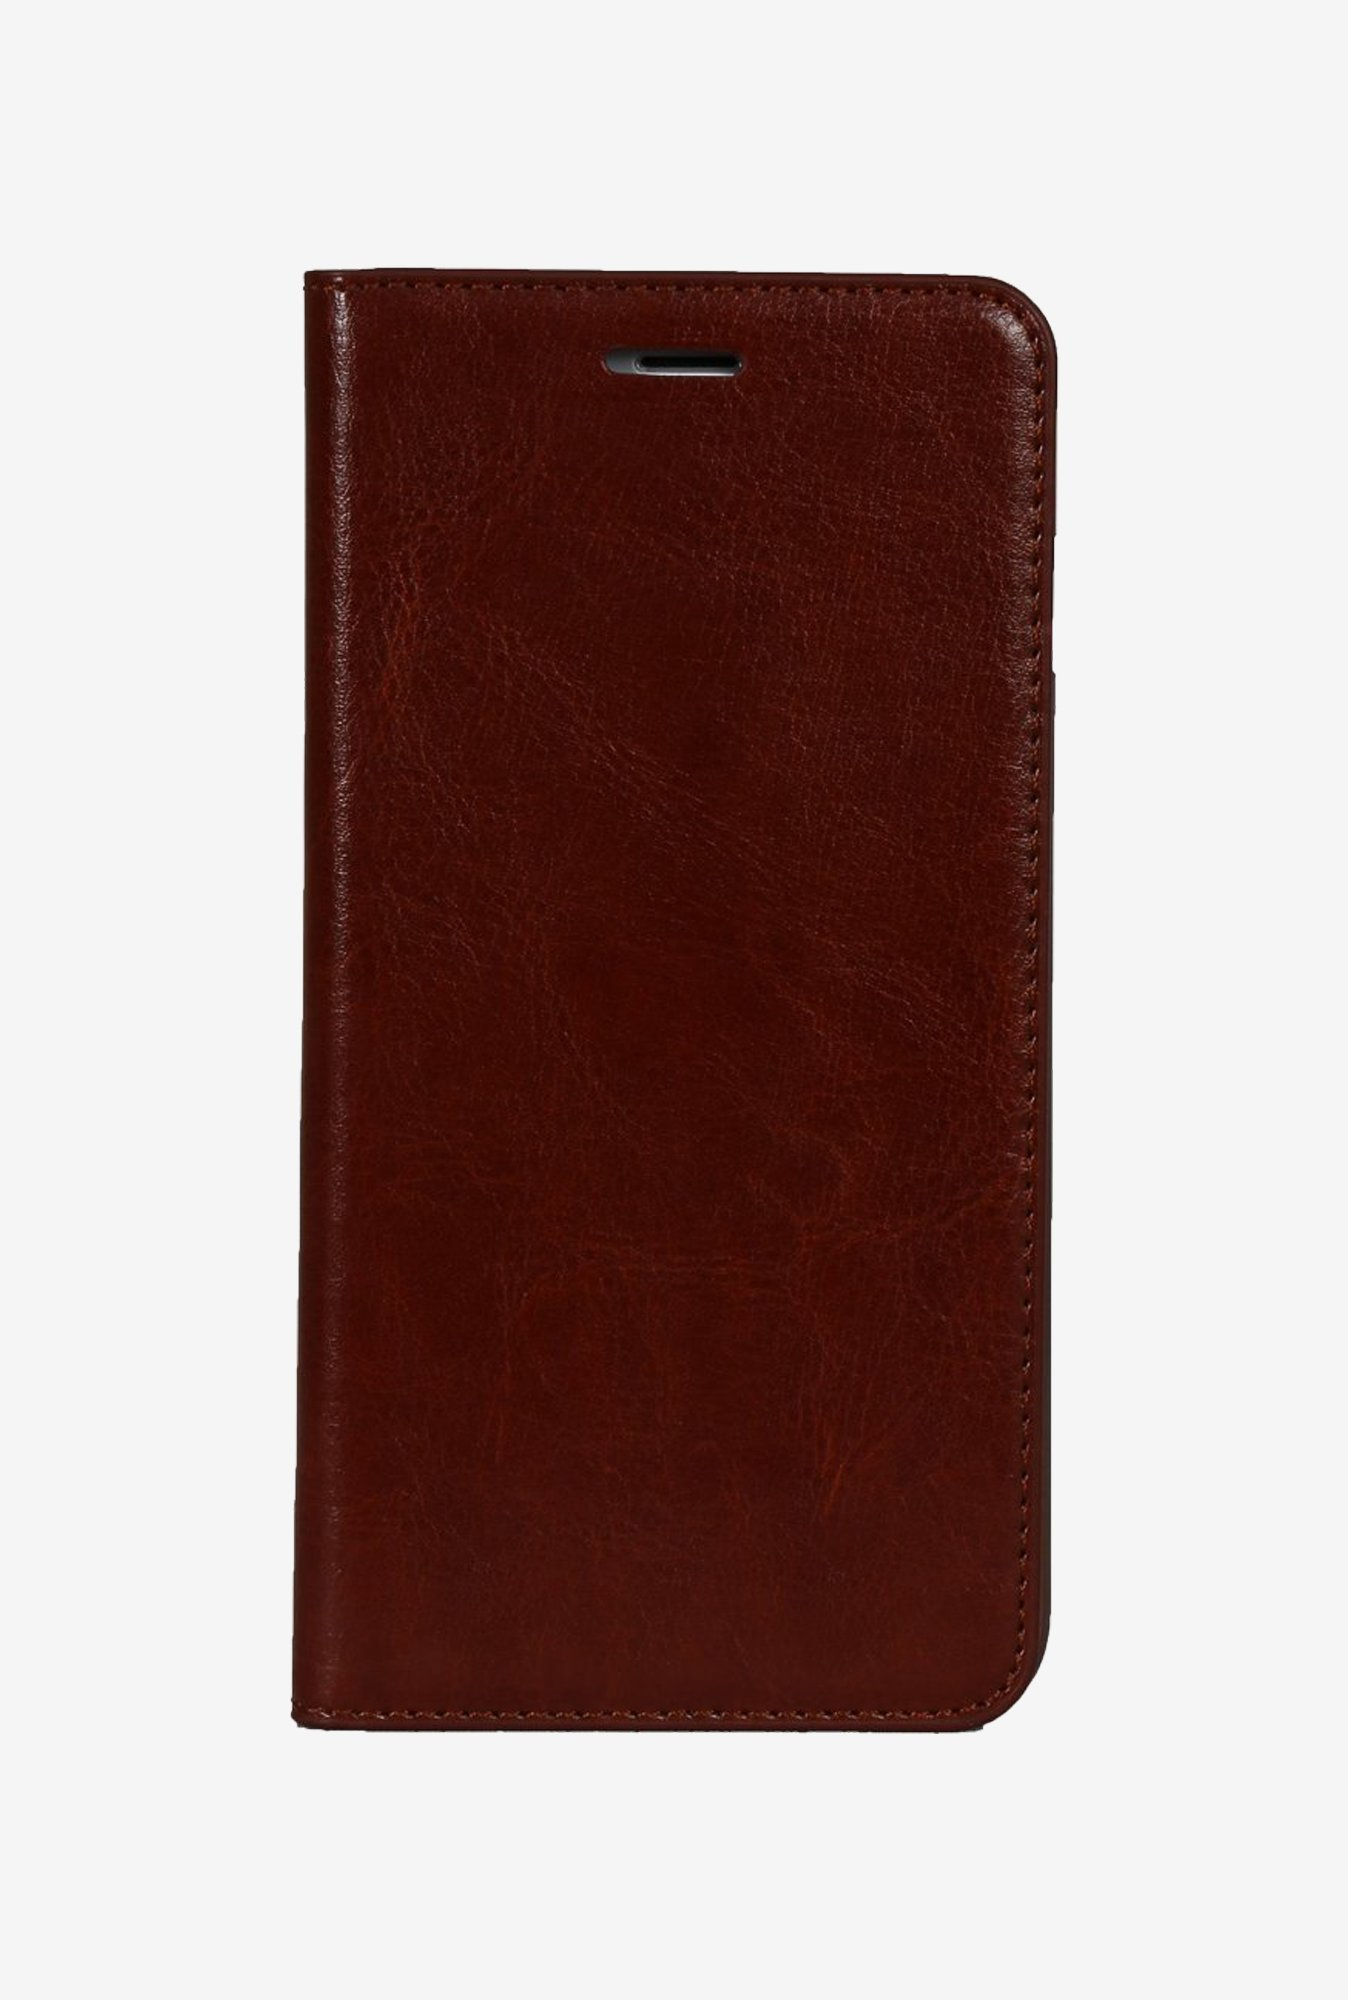 iAccy IP6P011 Wallet Case Maroon for iPhone 6 Plus